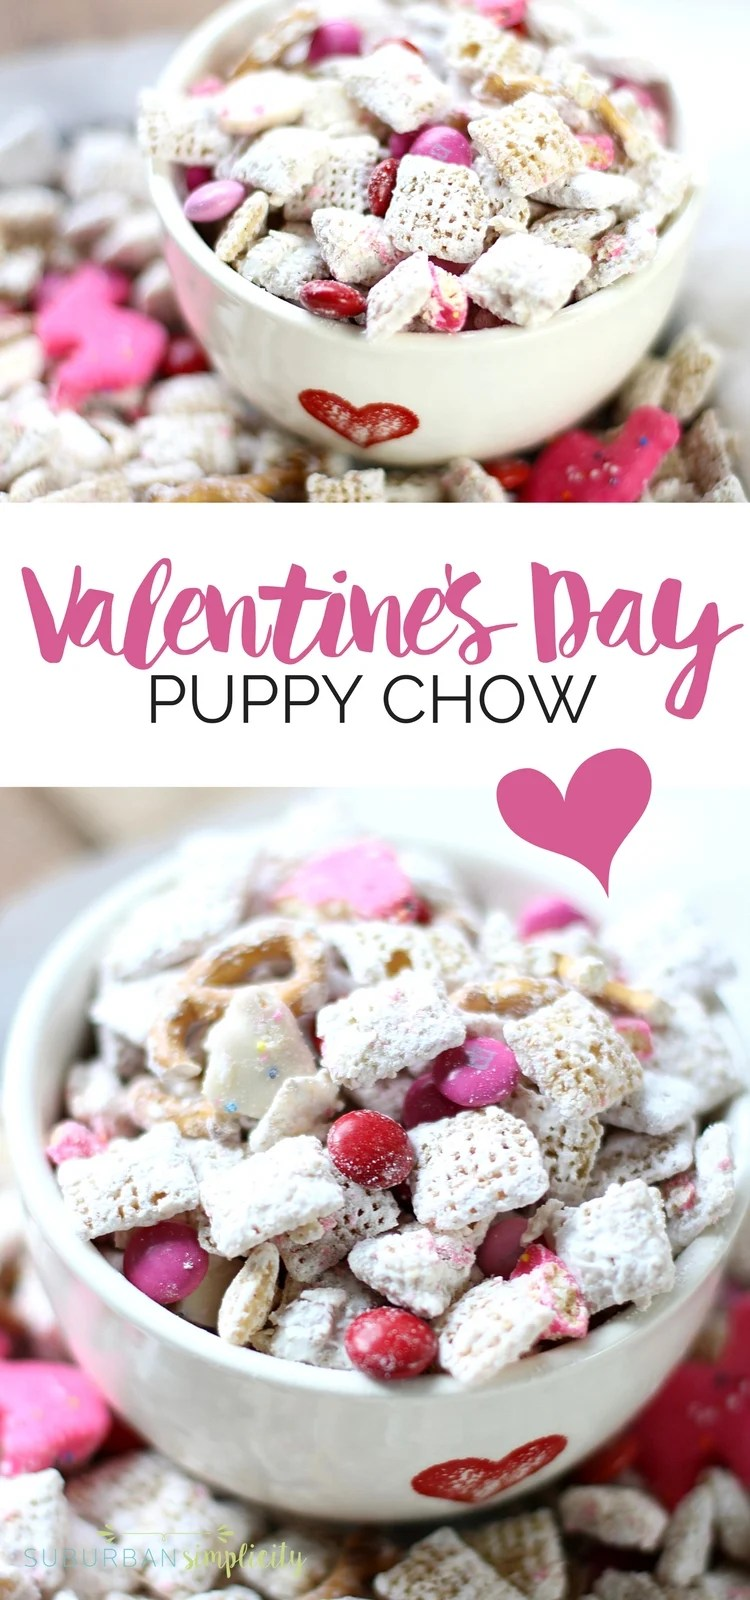 Valentineu0027s Day Puppy Chow Is The Perfect Treat For The Holiday. An Amazing  Combination Of